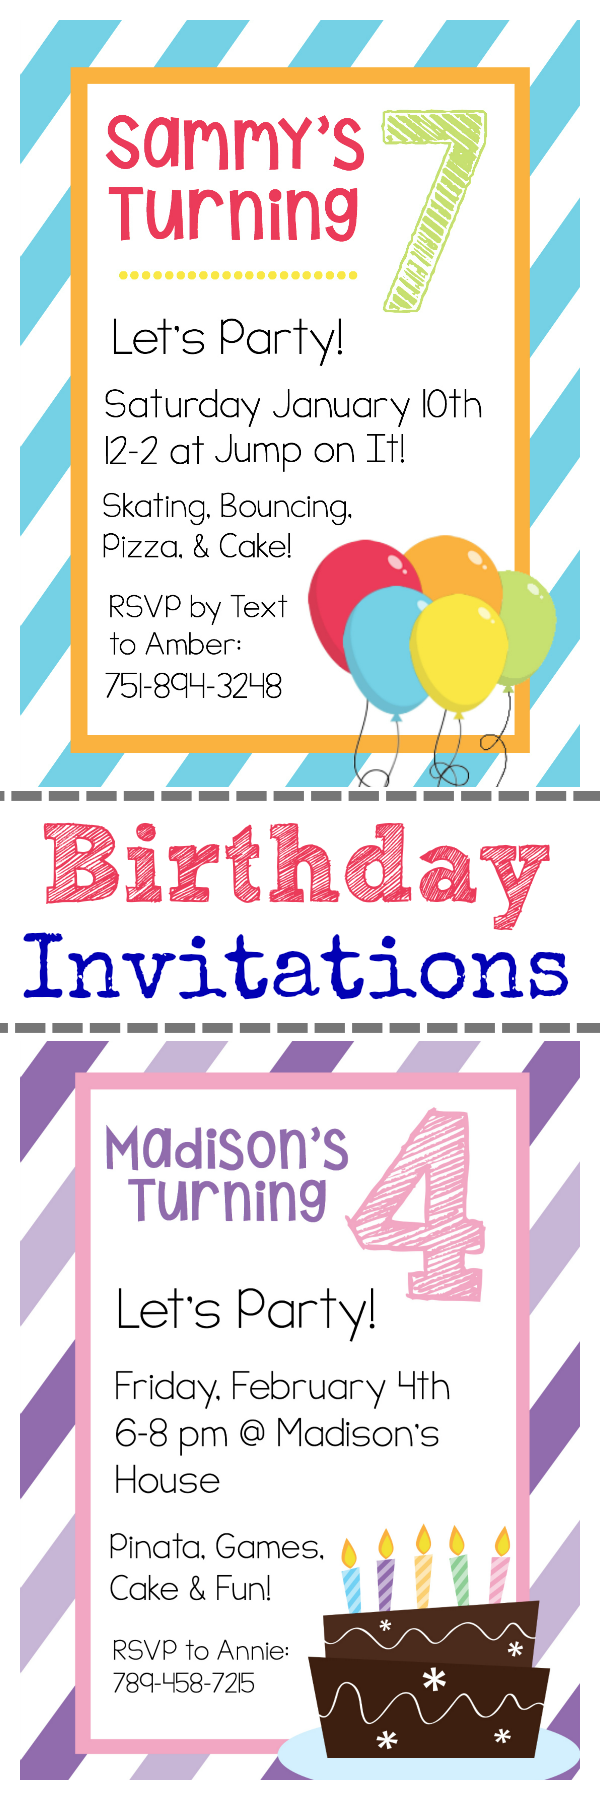 photo about Free Printable Boy Birthday Invitations titled Free of charge Printable Birthday Invitation Templates